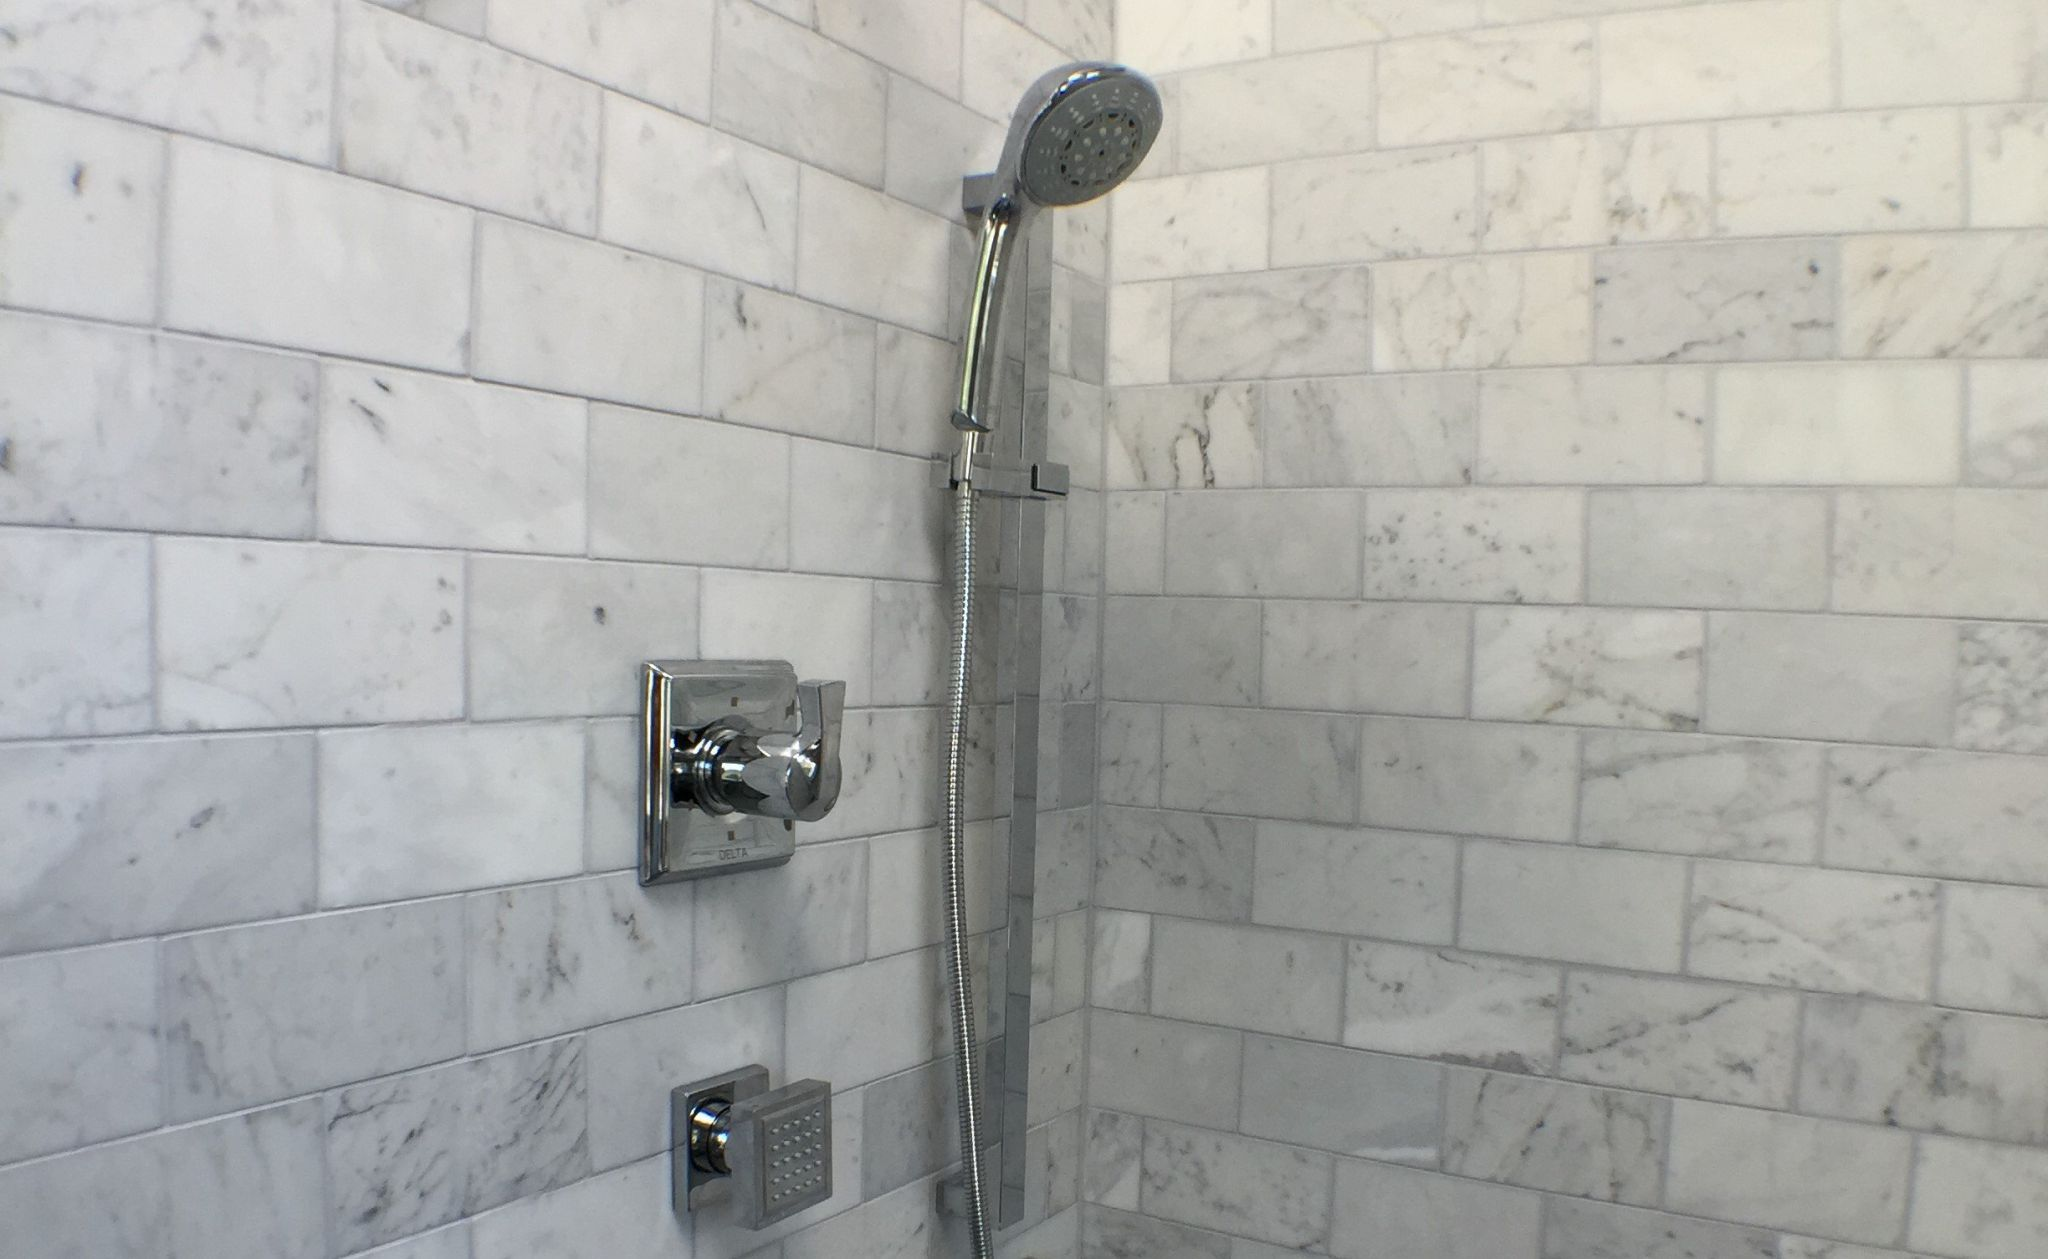 How To Choose The Best Grout Color For Your Bathroom